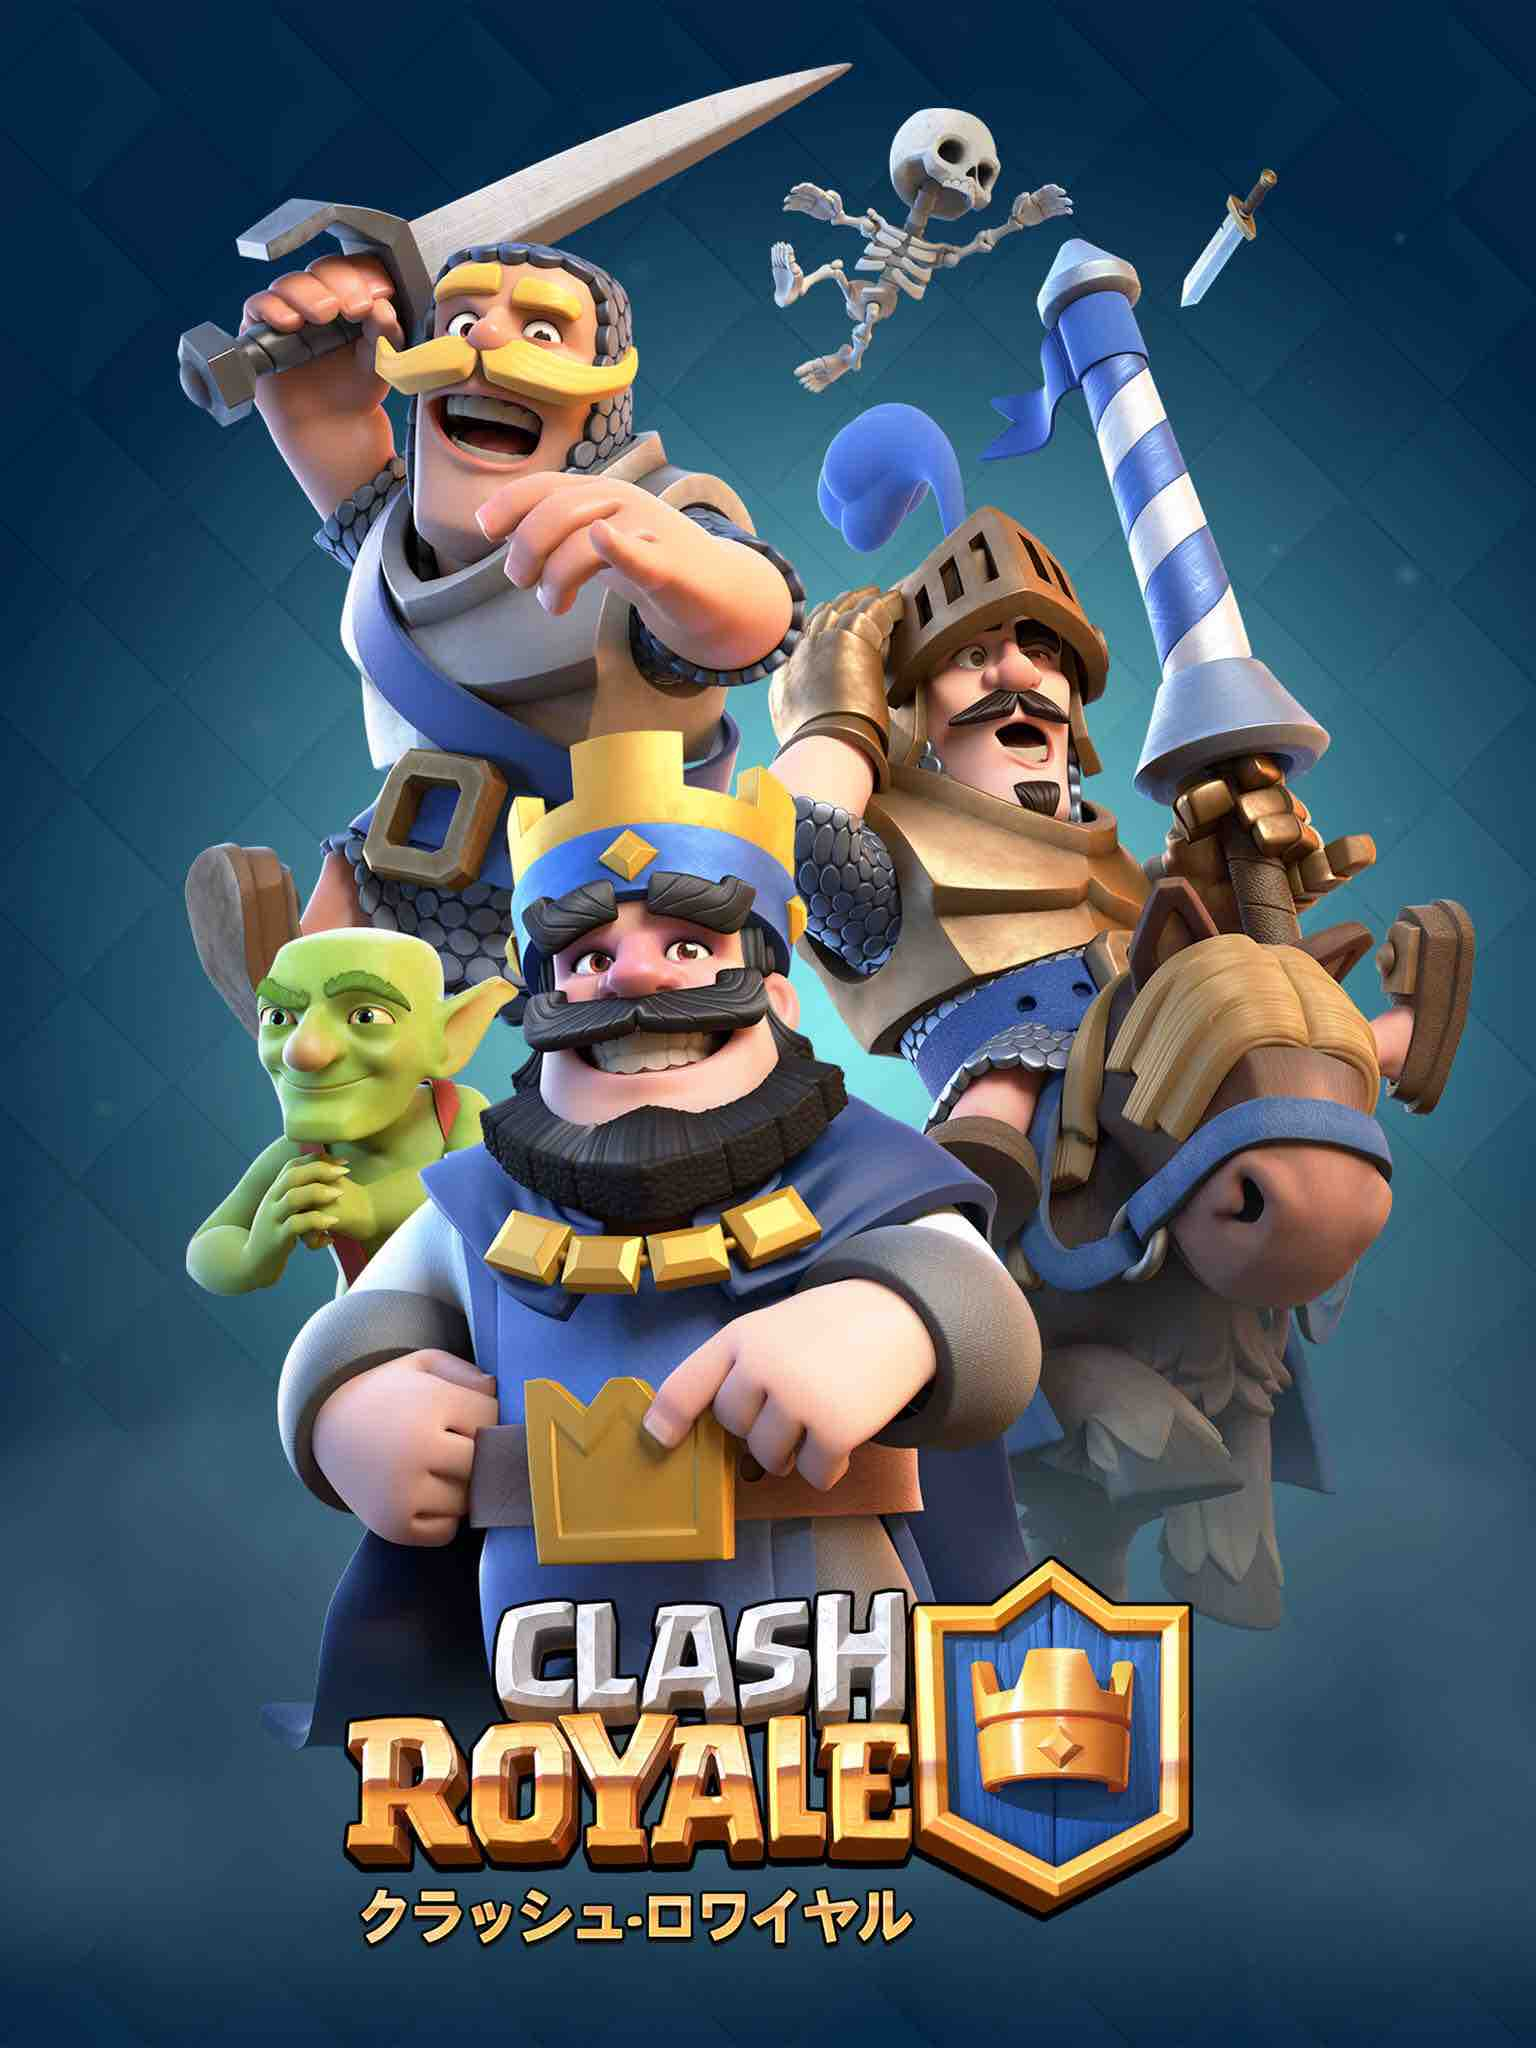 Big In Japan: Japan joins the Clash Royale